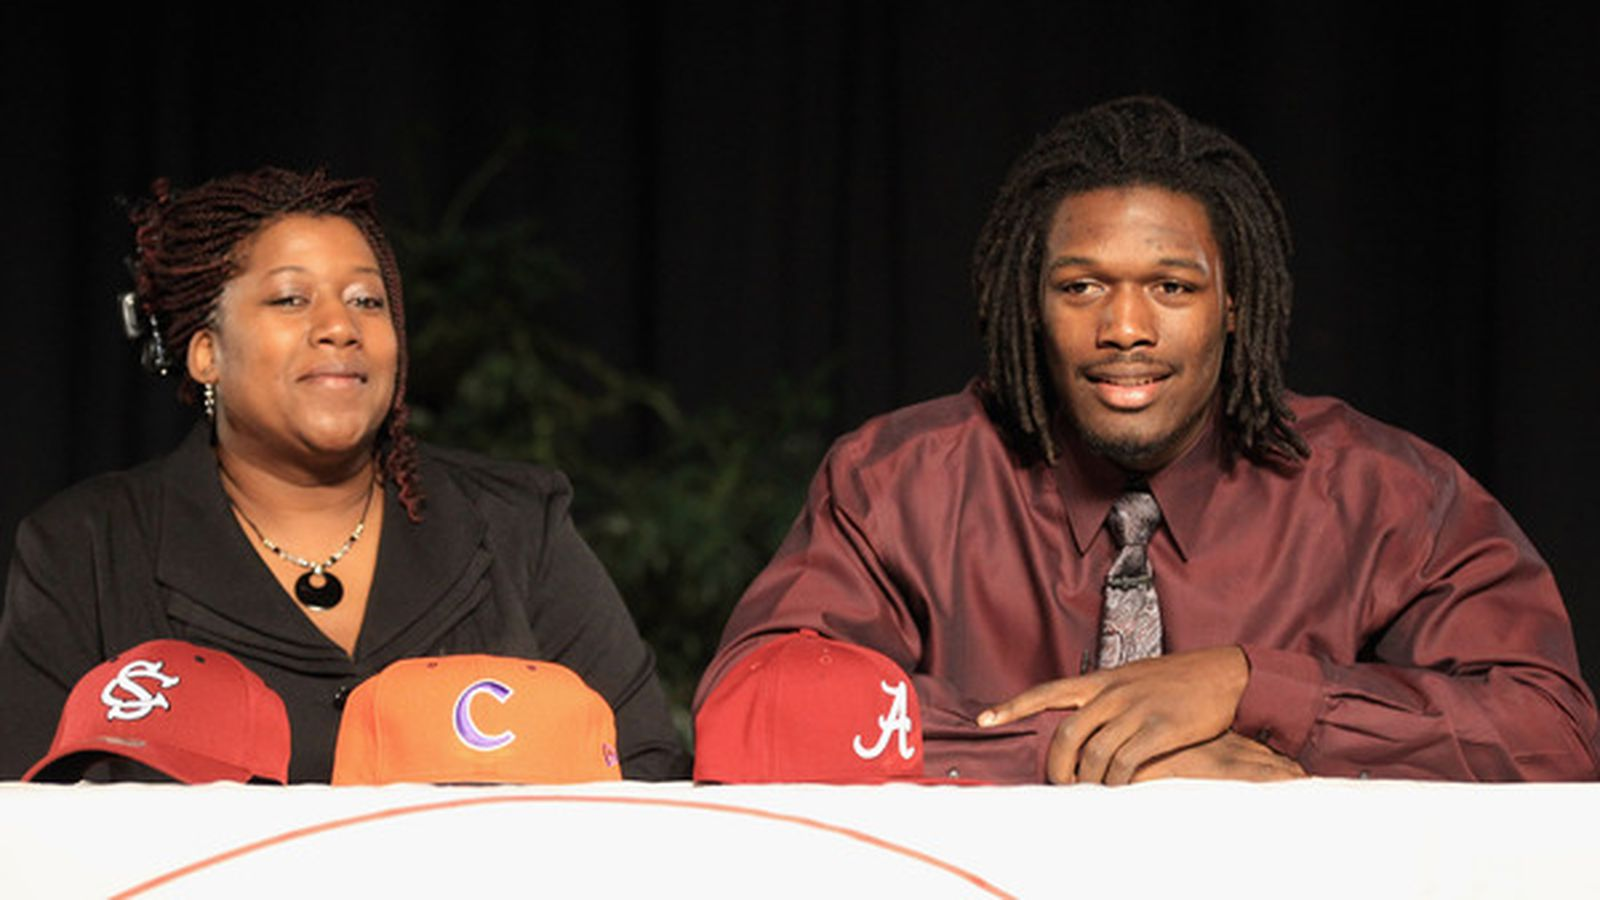 pdes signing day 2012 - HD1600×900